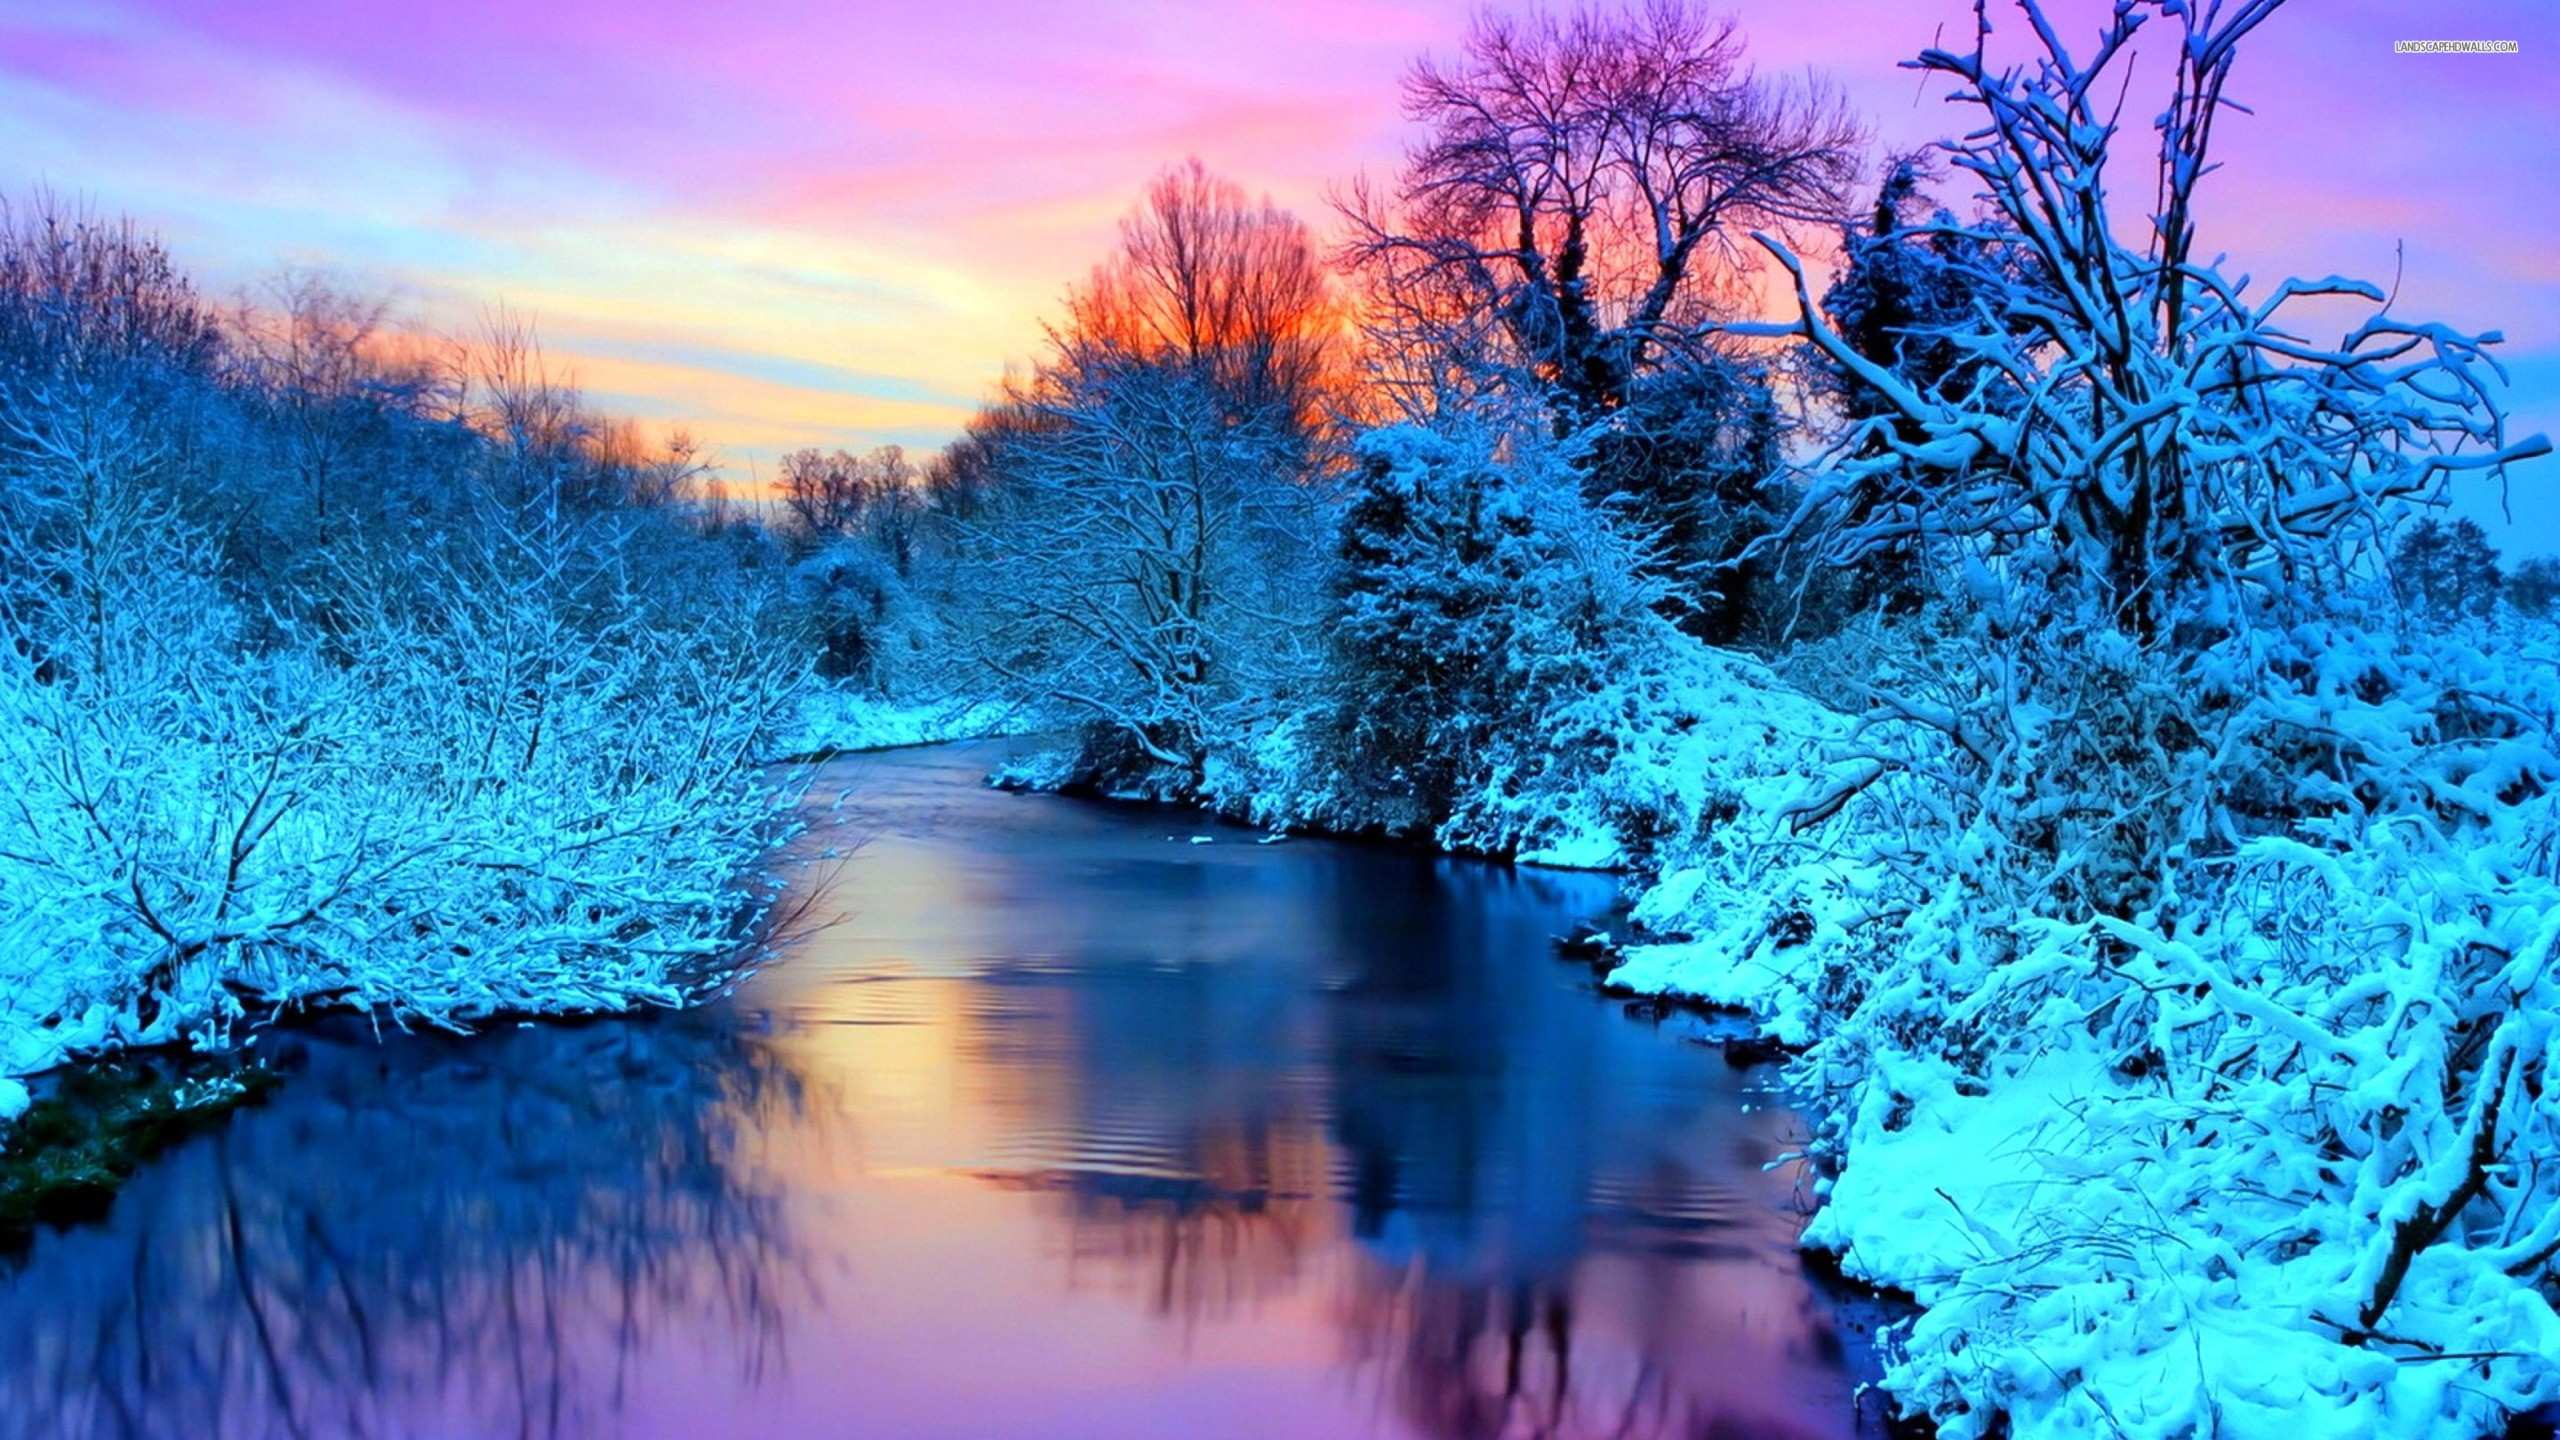 High Resolution Wallpaper: Winter Background Images ·① Download Free Awesome High